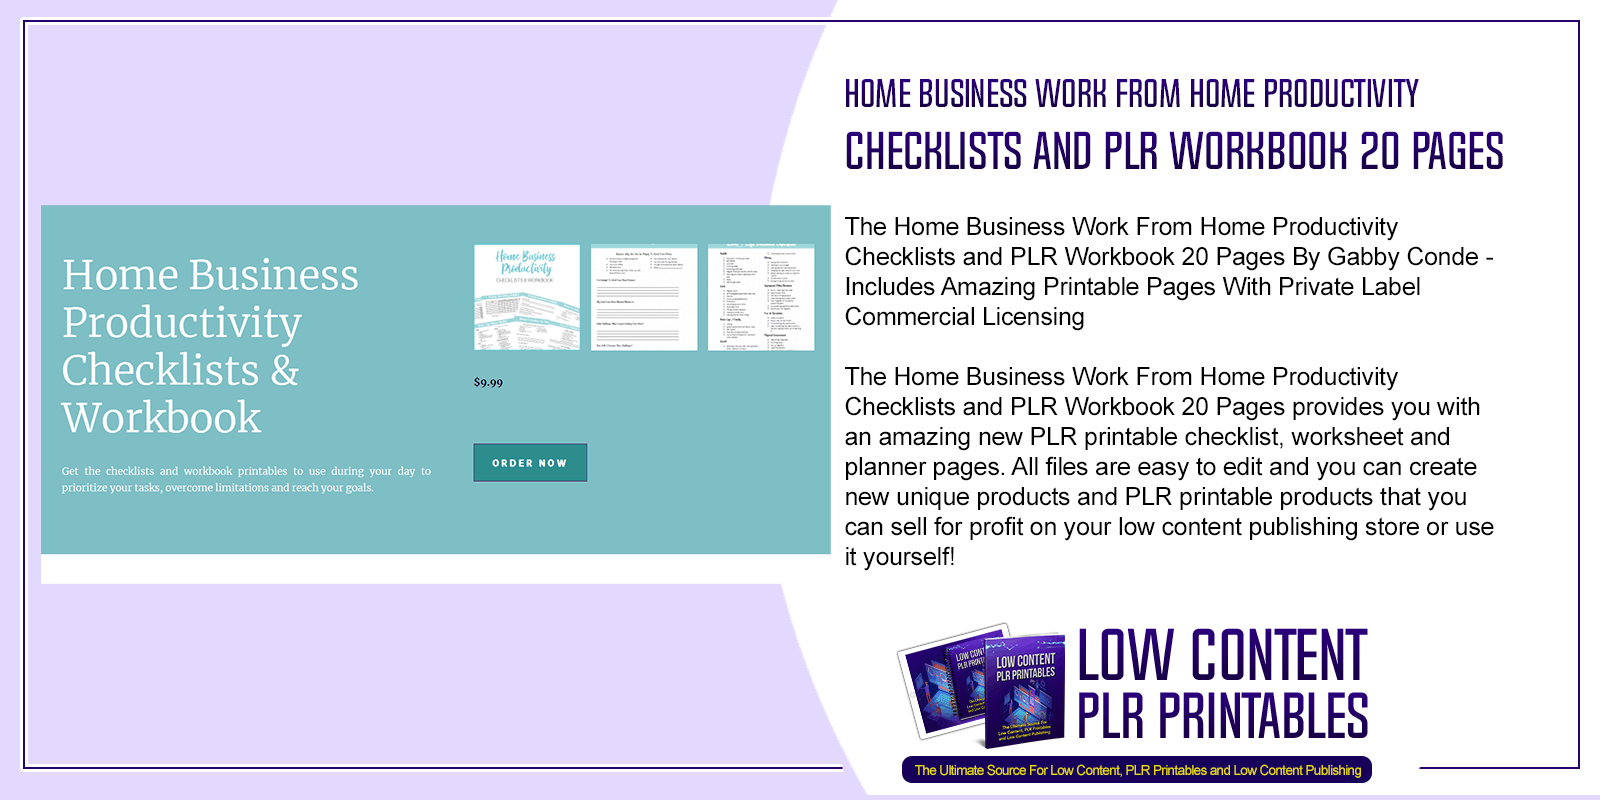 Home Business Work From Home Productivity Checklists and PLR Workbook 20 Pages